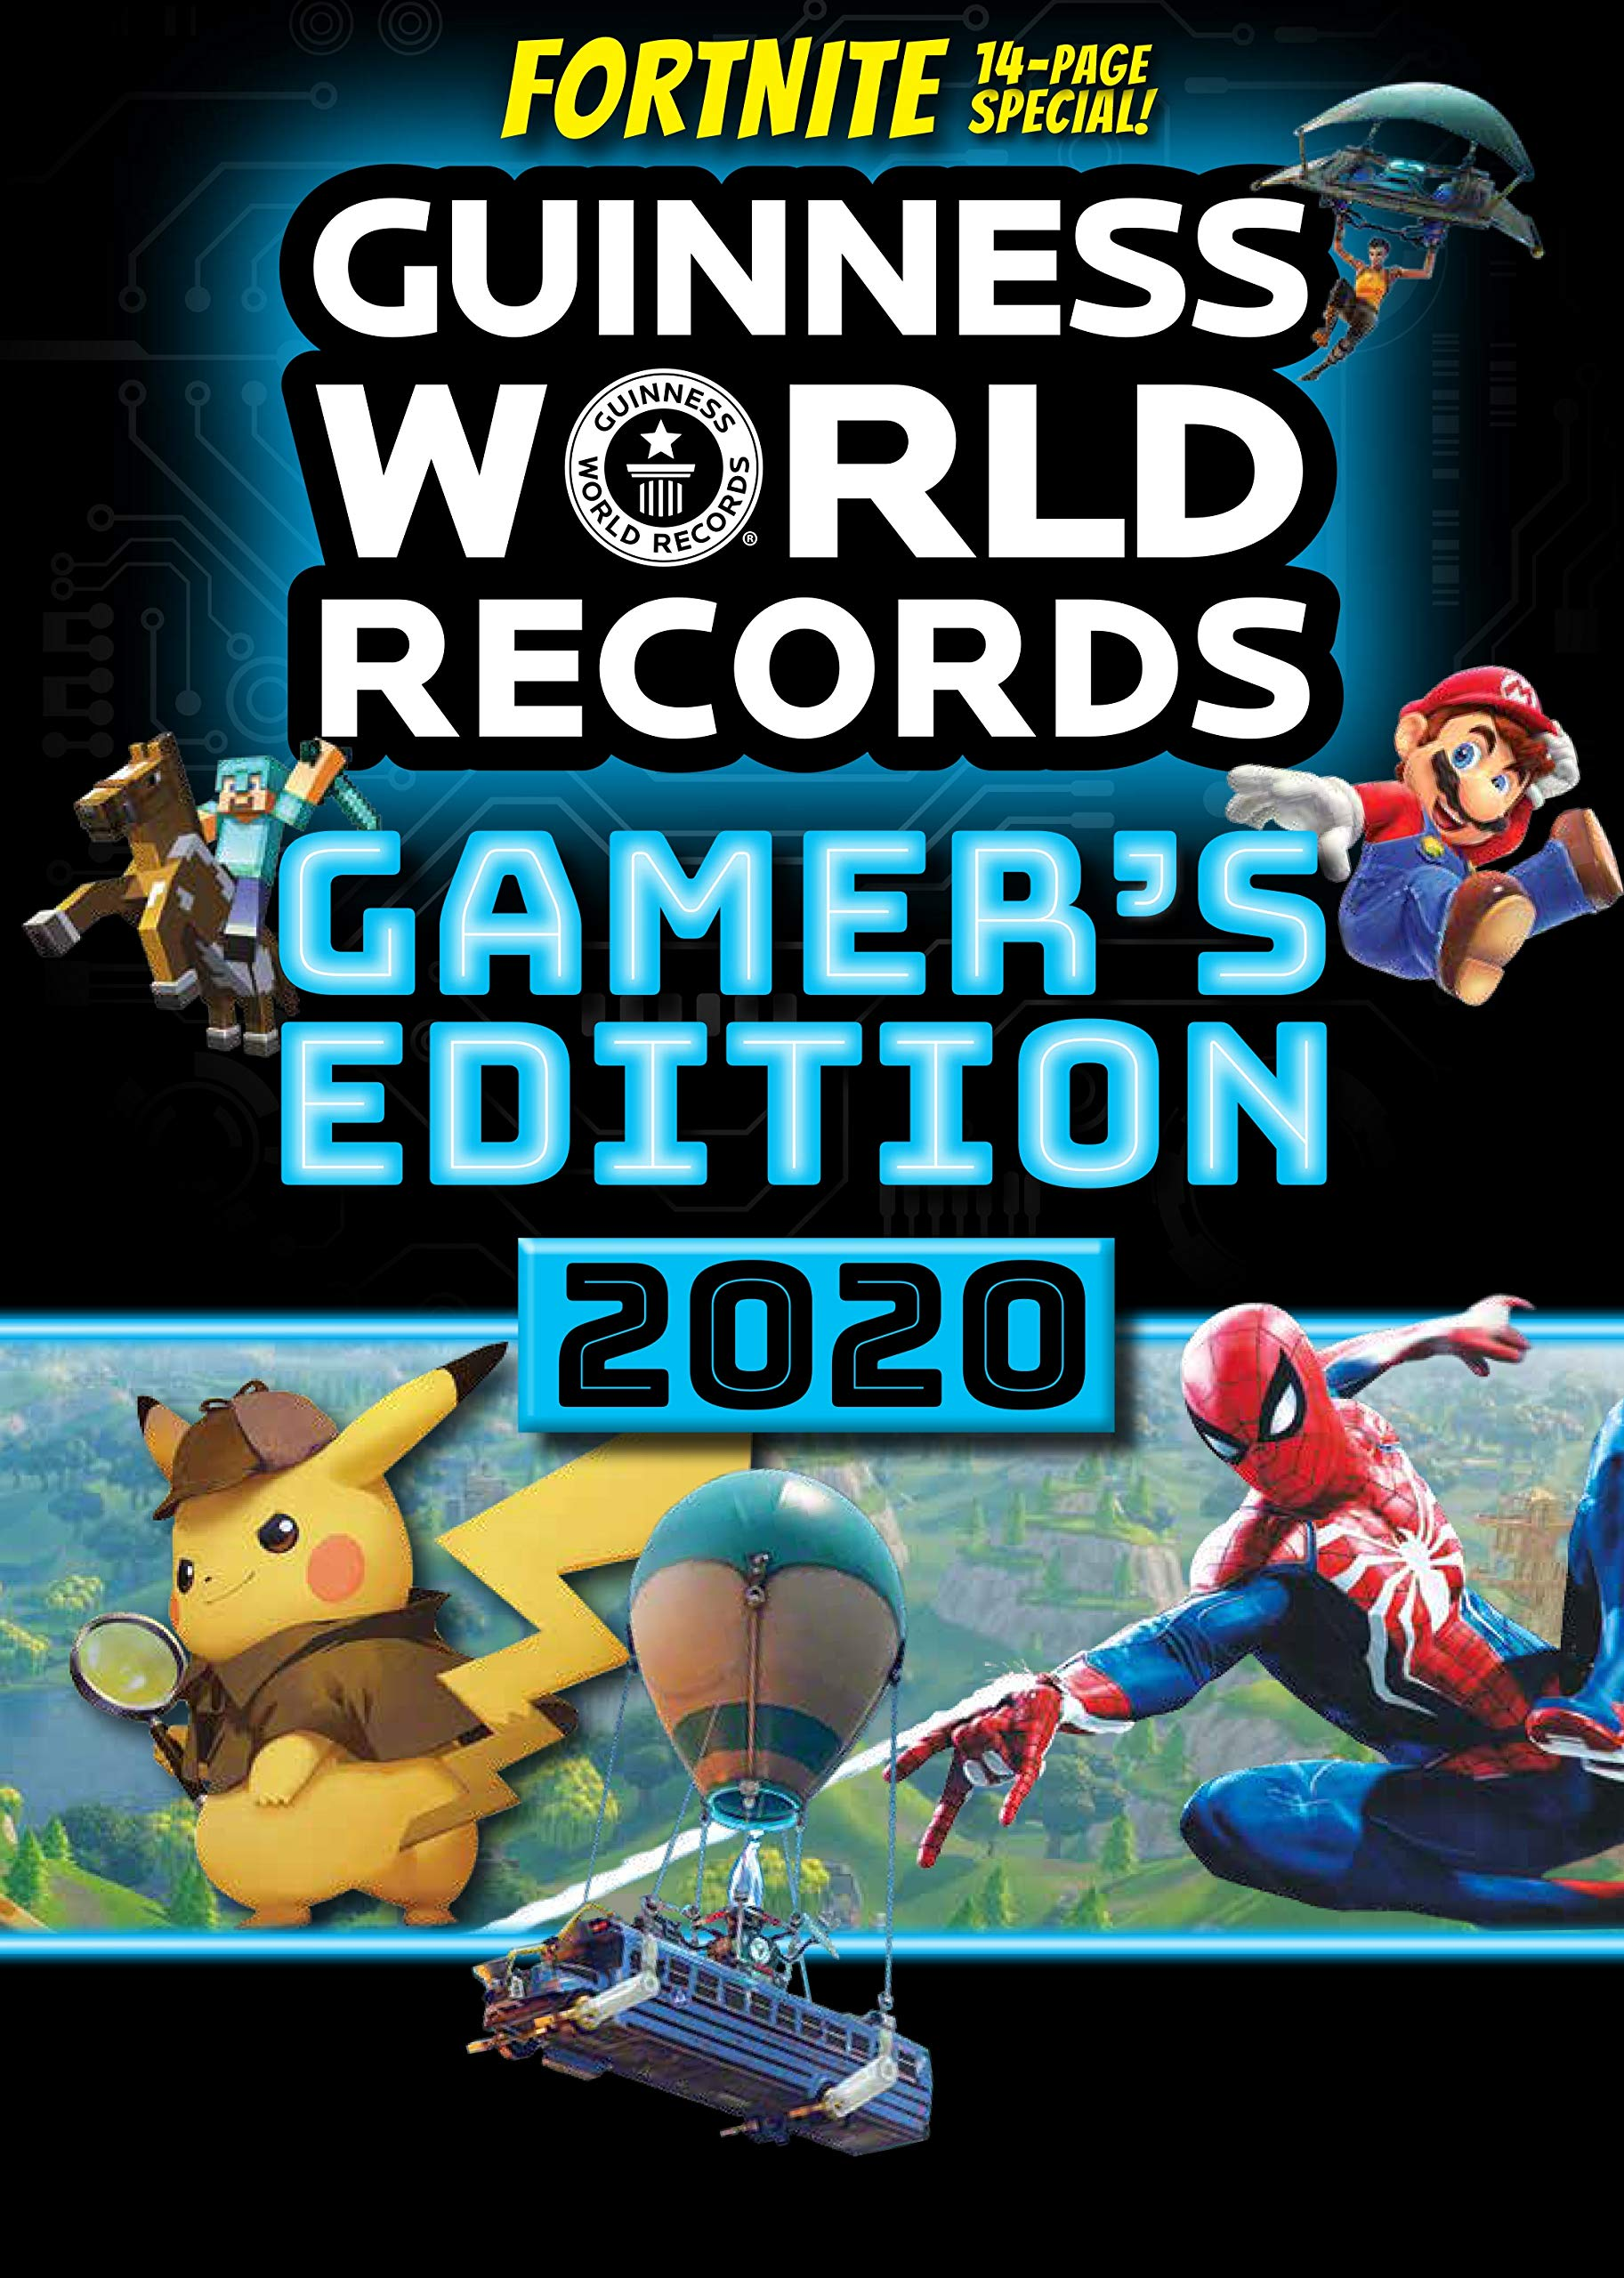 Guinness World Records 2020 List.Guinness World Records Gamer S Edition 2020 Amazon Co Uk